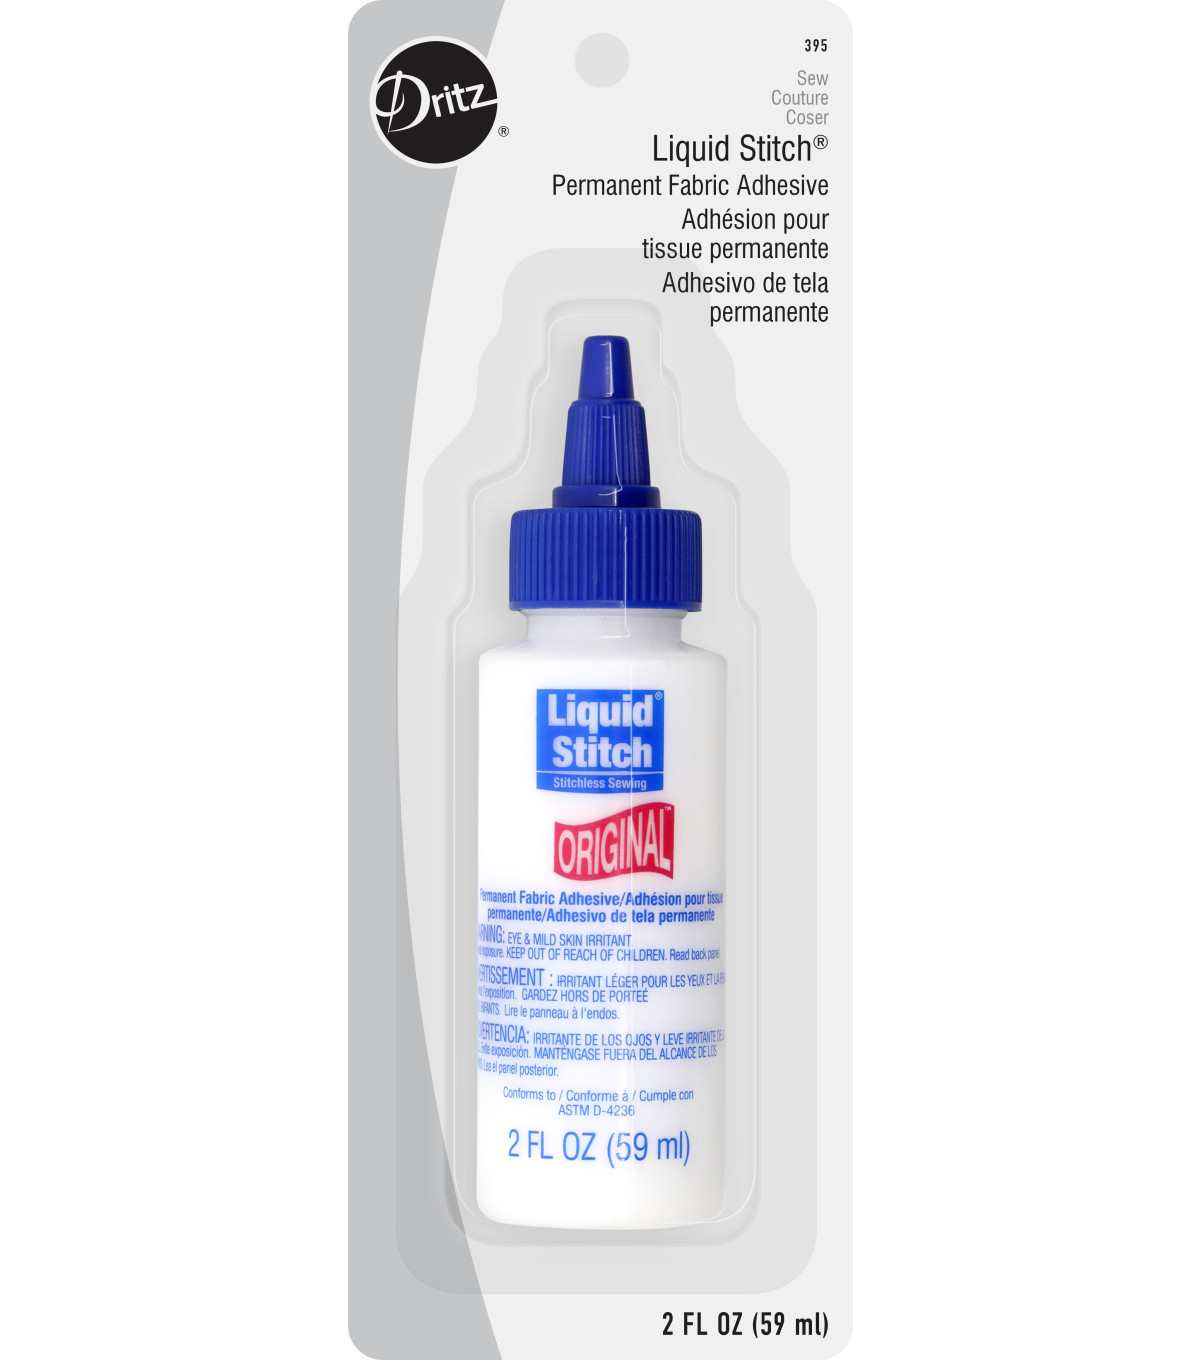 Dritz Liquid Stitch 2 Fl Oz